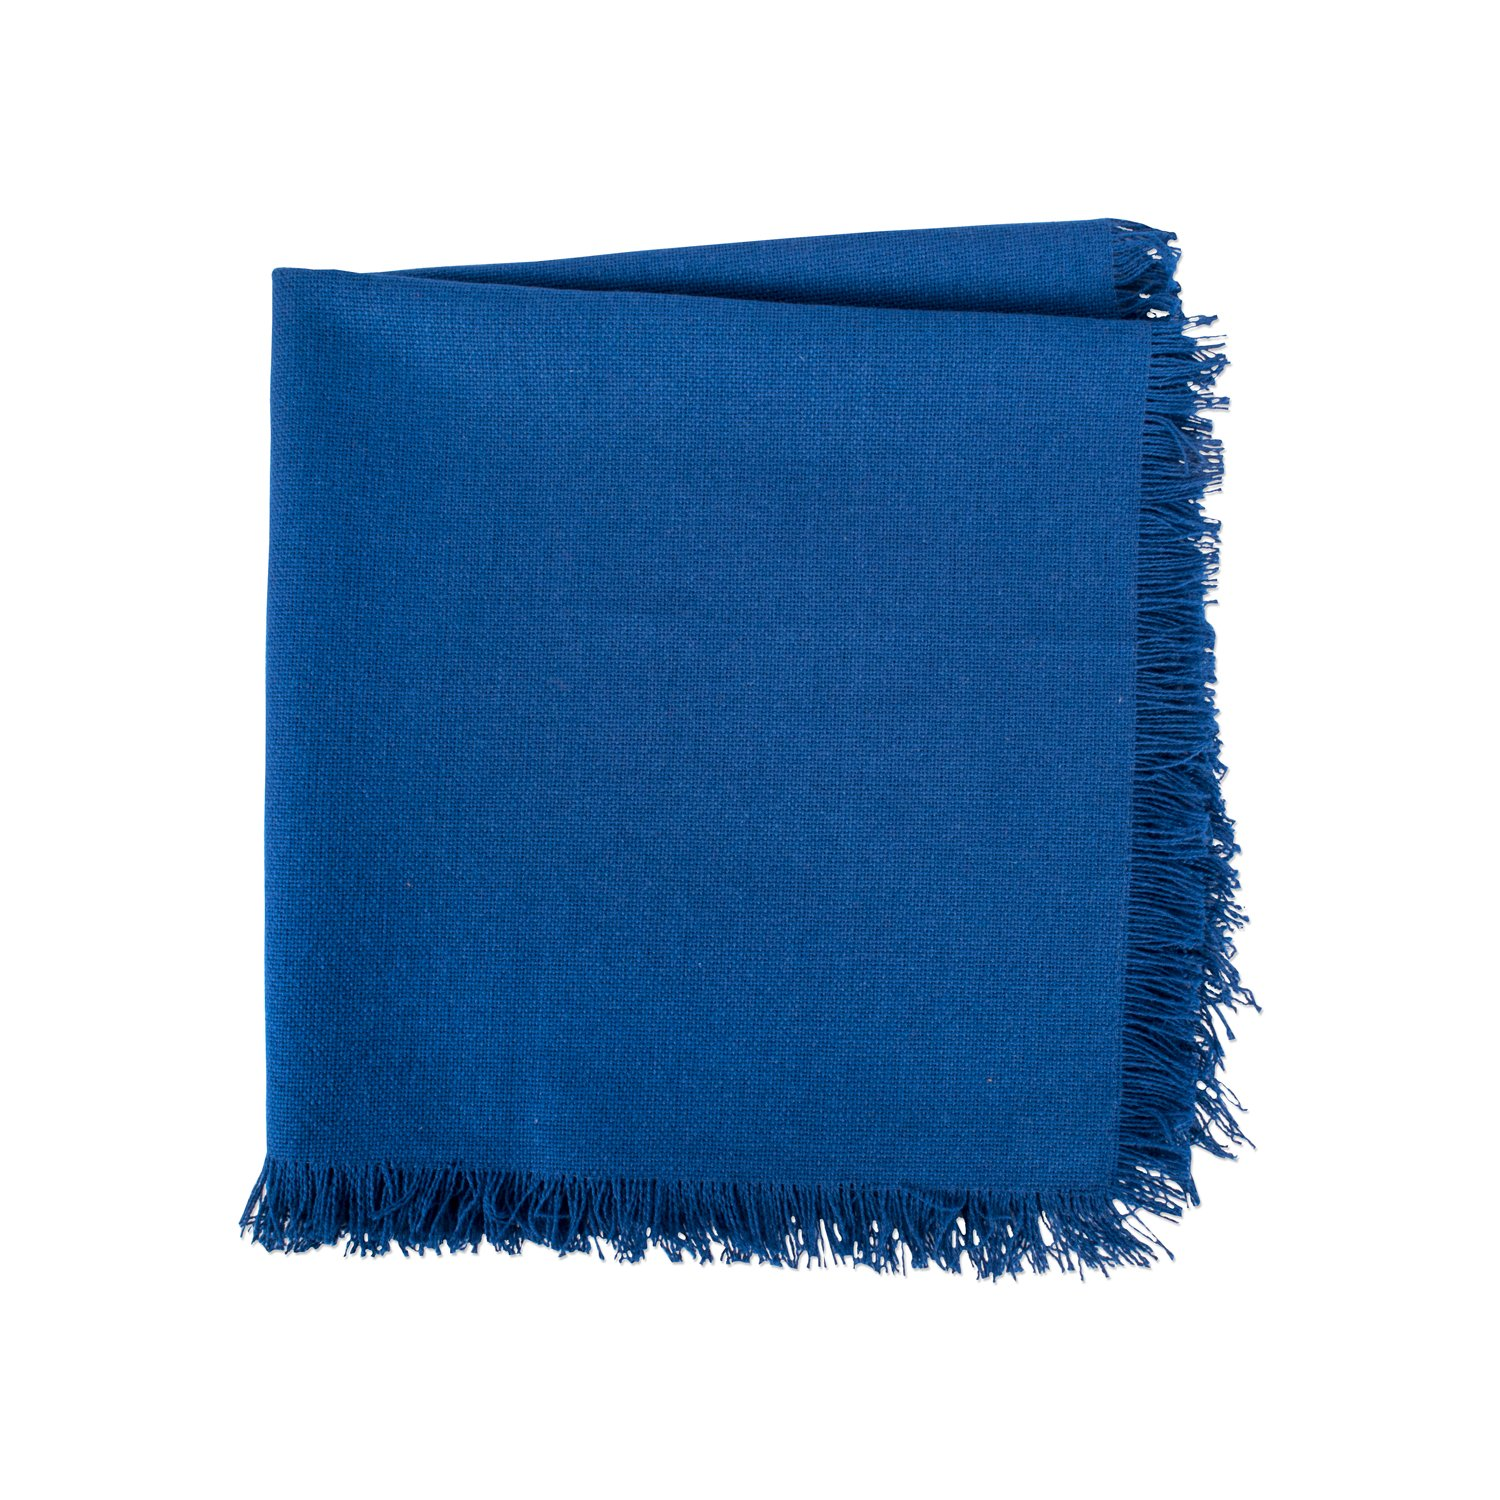 DII 100% Cotton, Oversized Basic Everyday Woven Heavyweight Napkin with Decorative Fringe for Place Settings, Family Dinners, BBQ, and Holidays (20x20'', Set of 6) Navy Blue Solid by DII (Image #5)